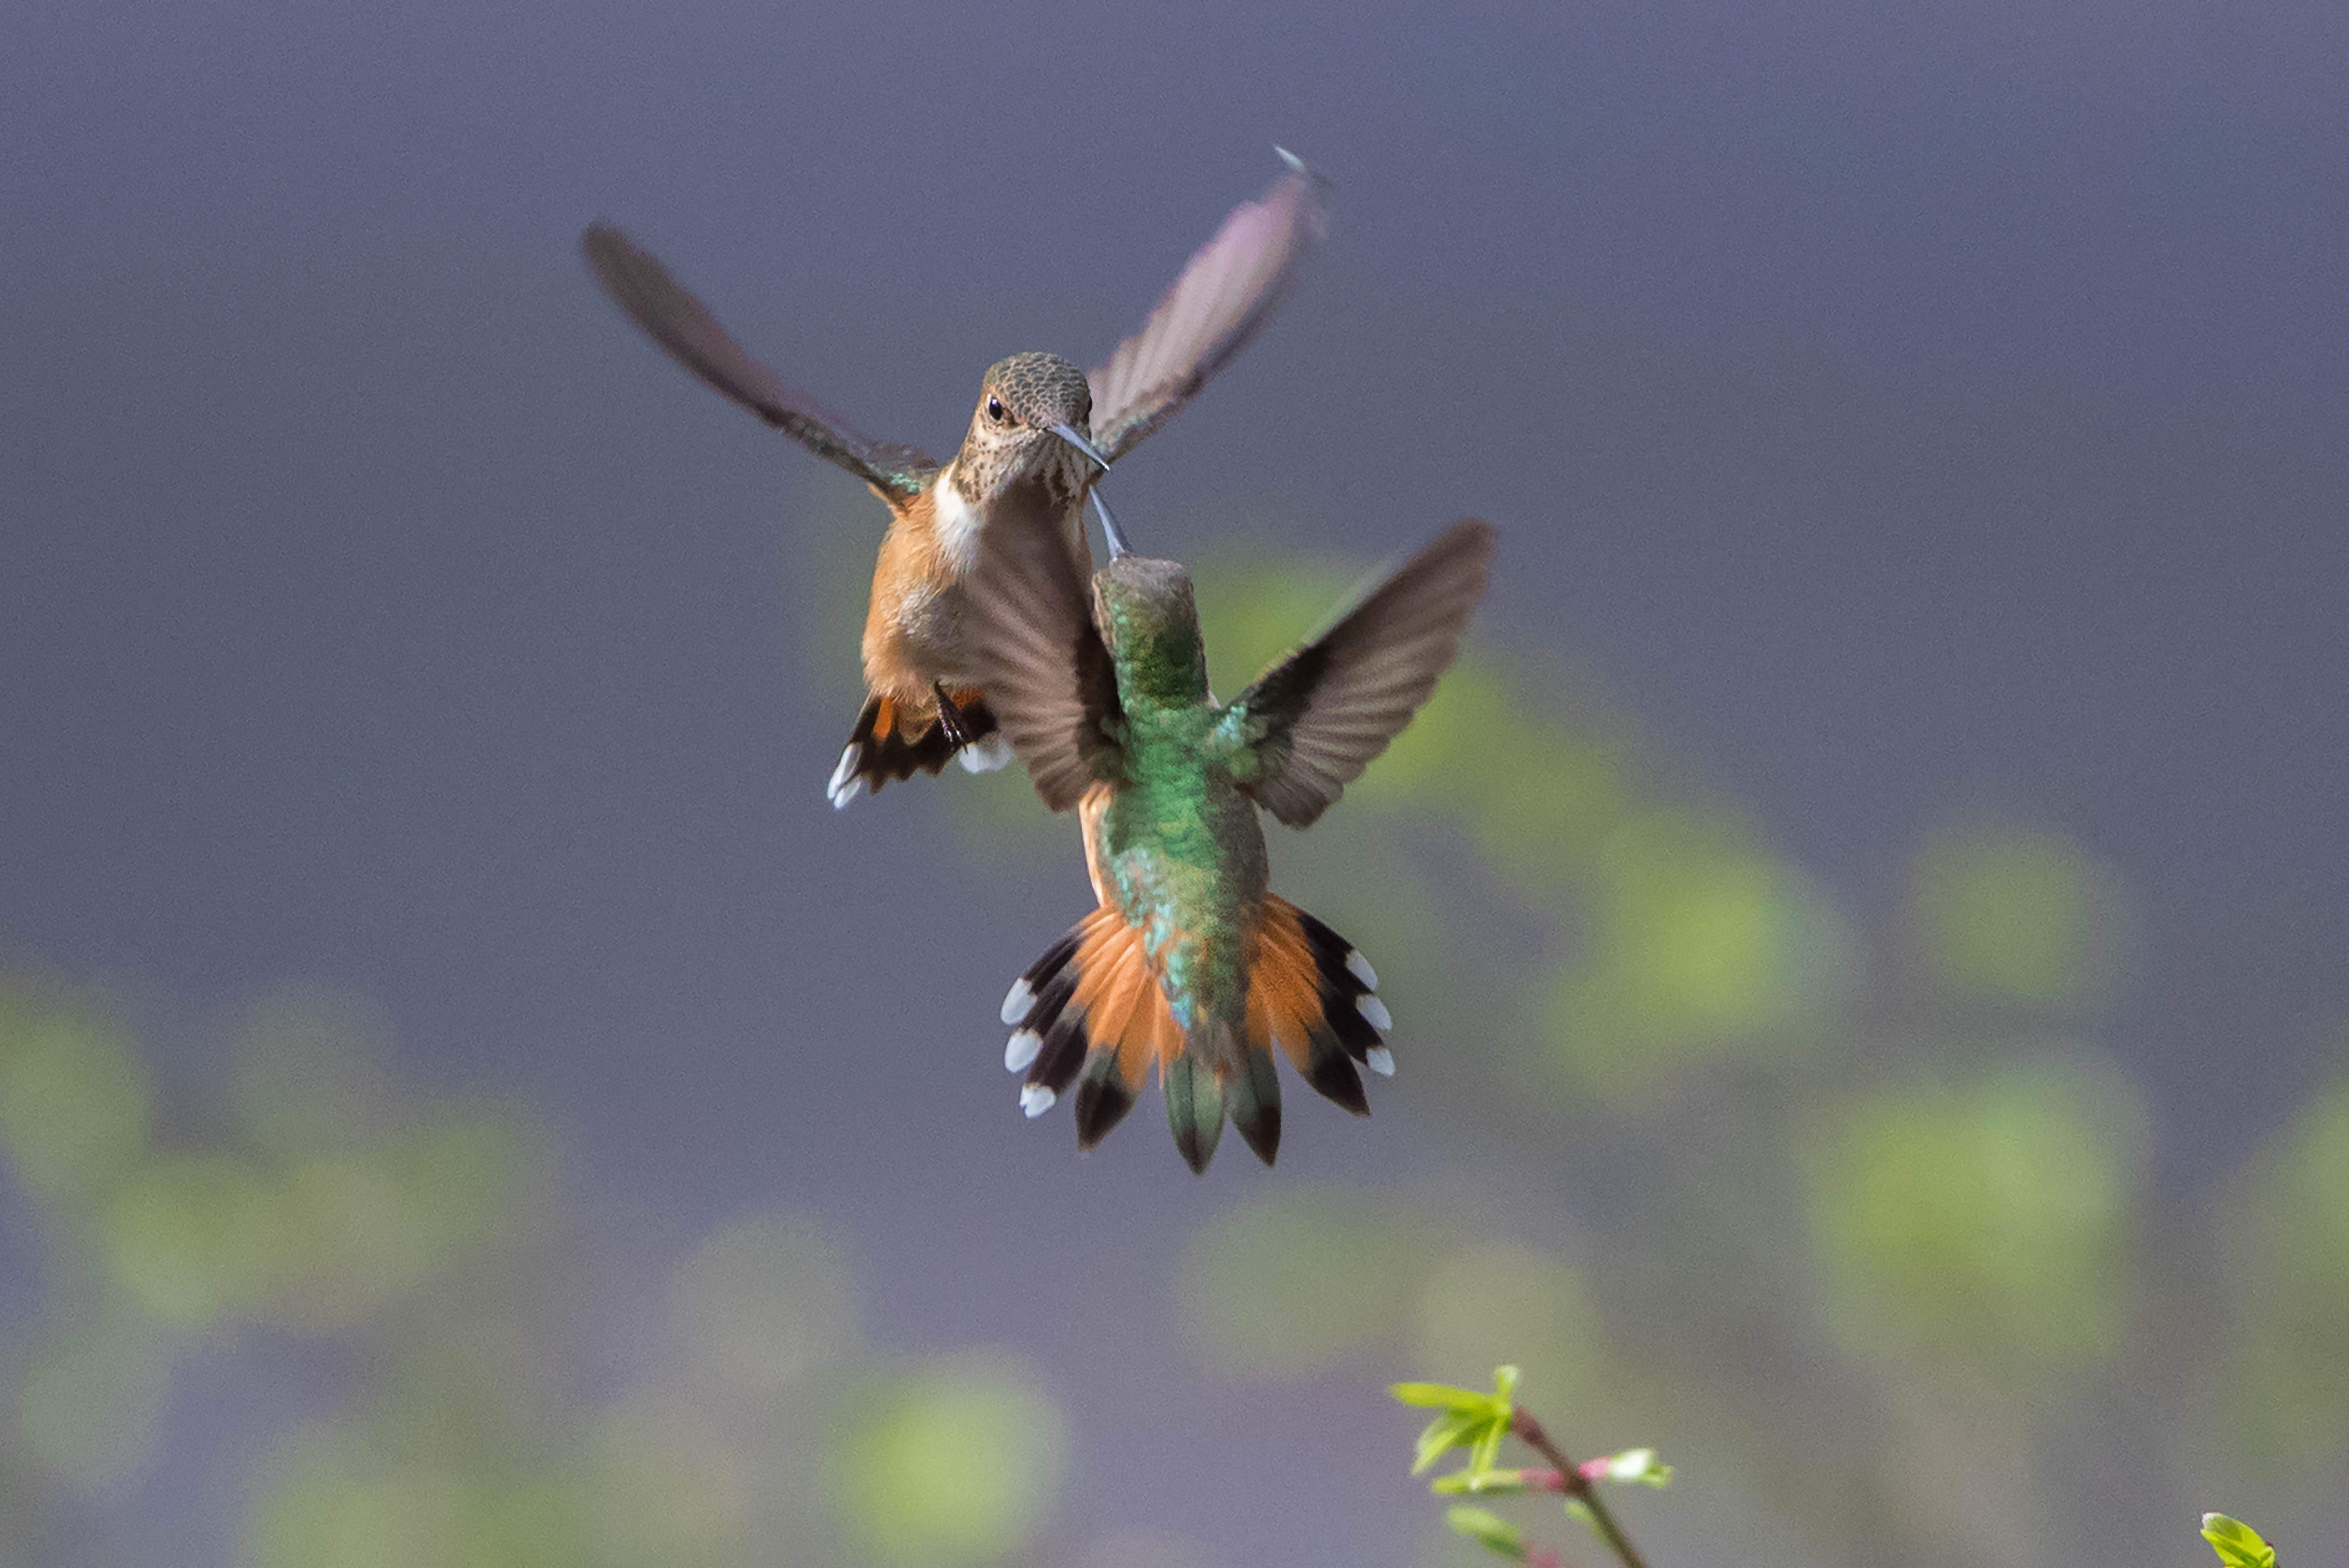 Dueling hummers, taken in Wimer - Photo by Jenny Grimm